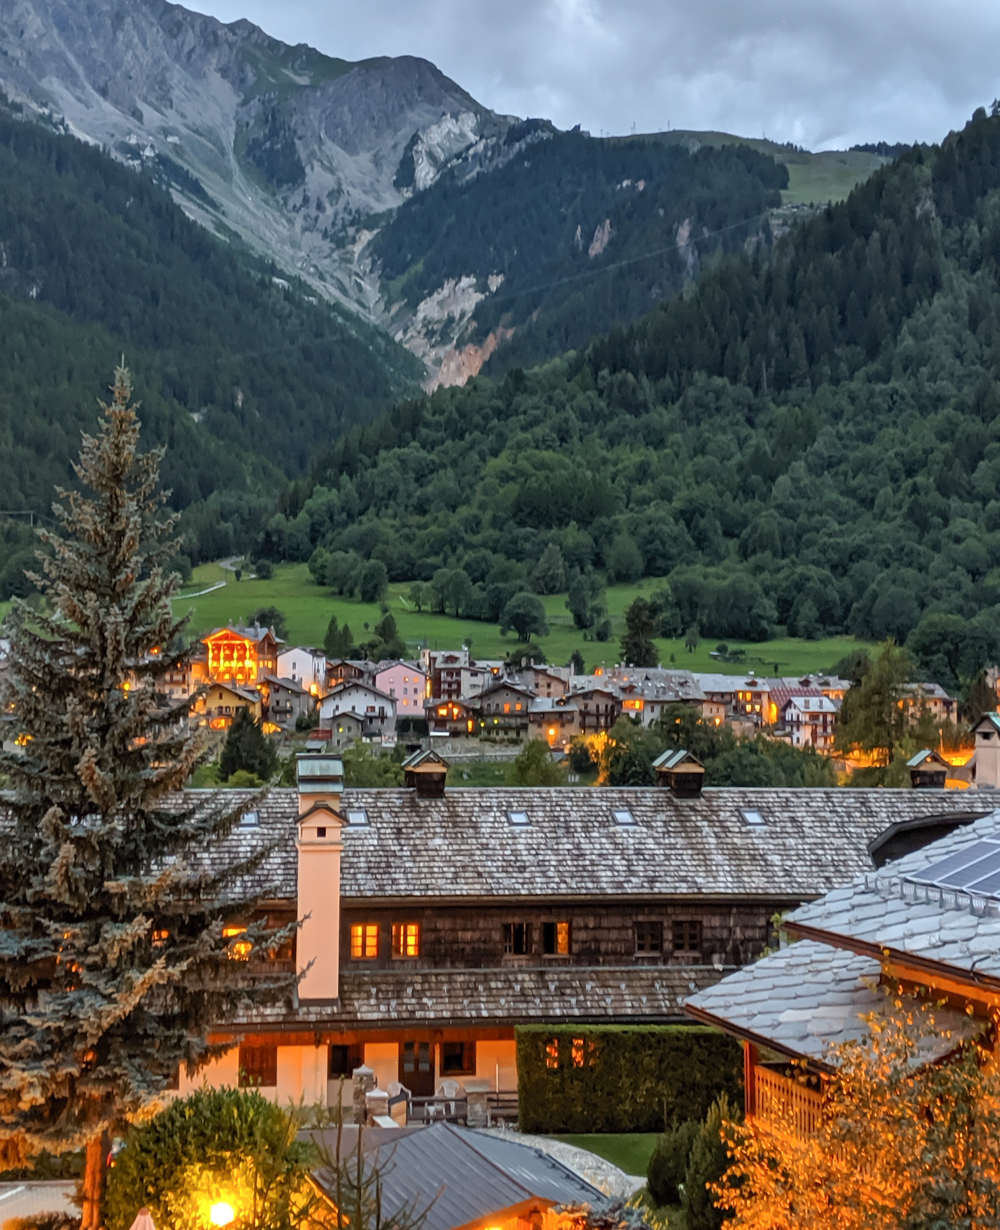 Day trip to Courmayeur, Italy from Chamonix, France / where to stay in courmayeur, Hotel Crampon balcony view